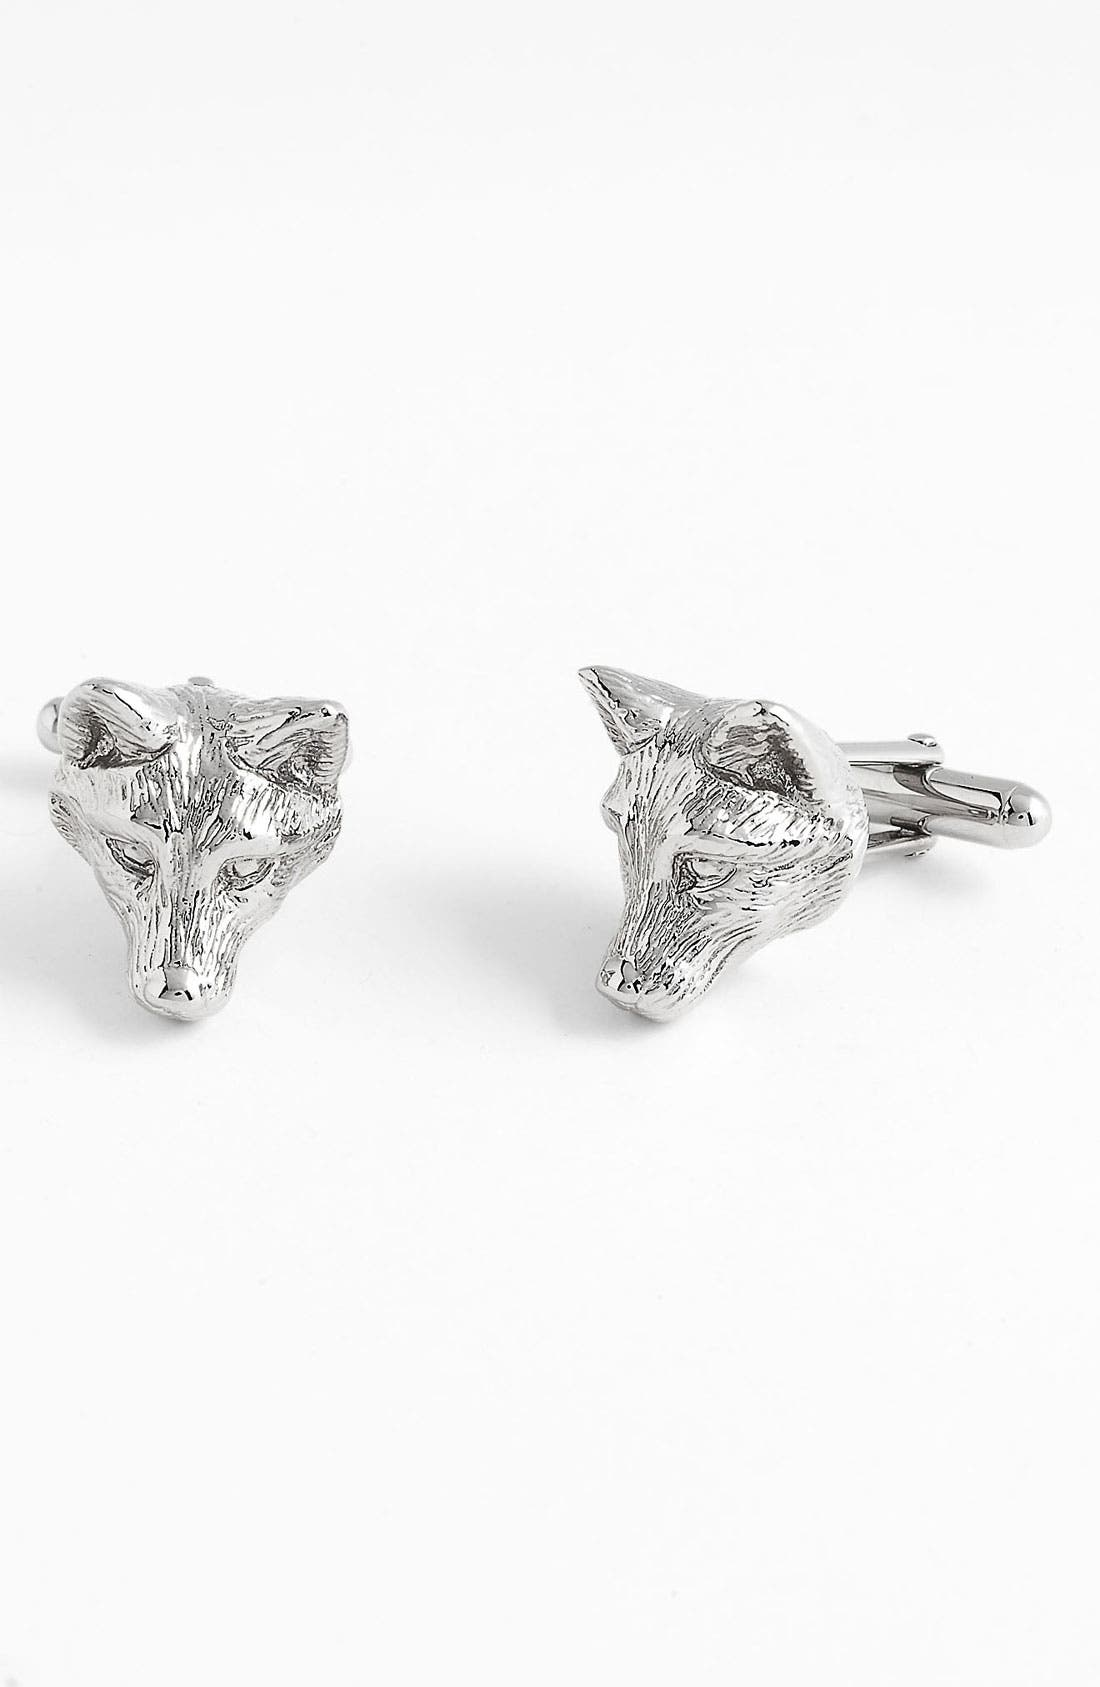 Alternate Image 1 Selected - Burberry 'Fox' Cuff Links